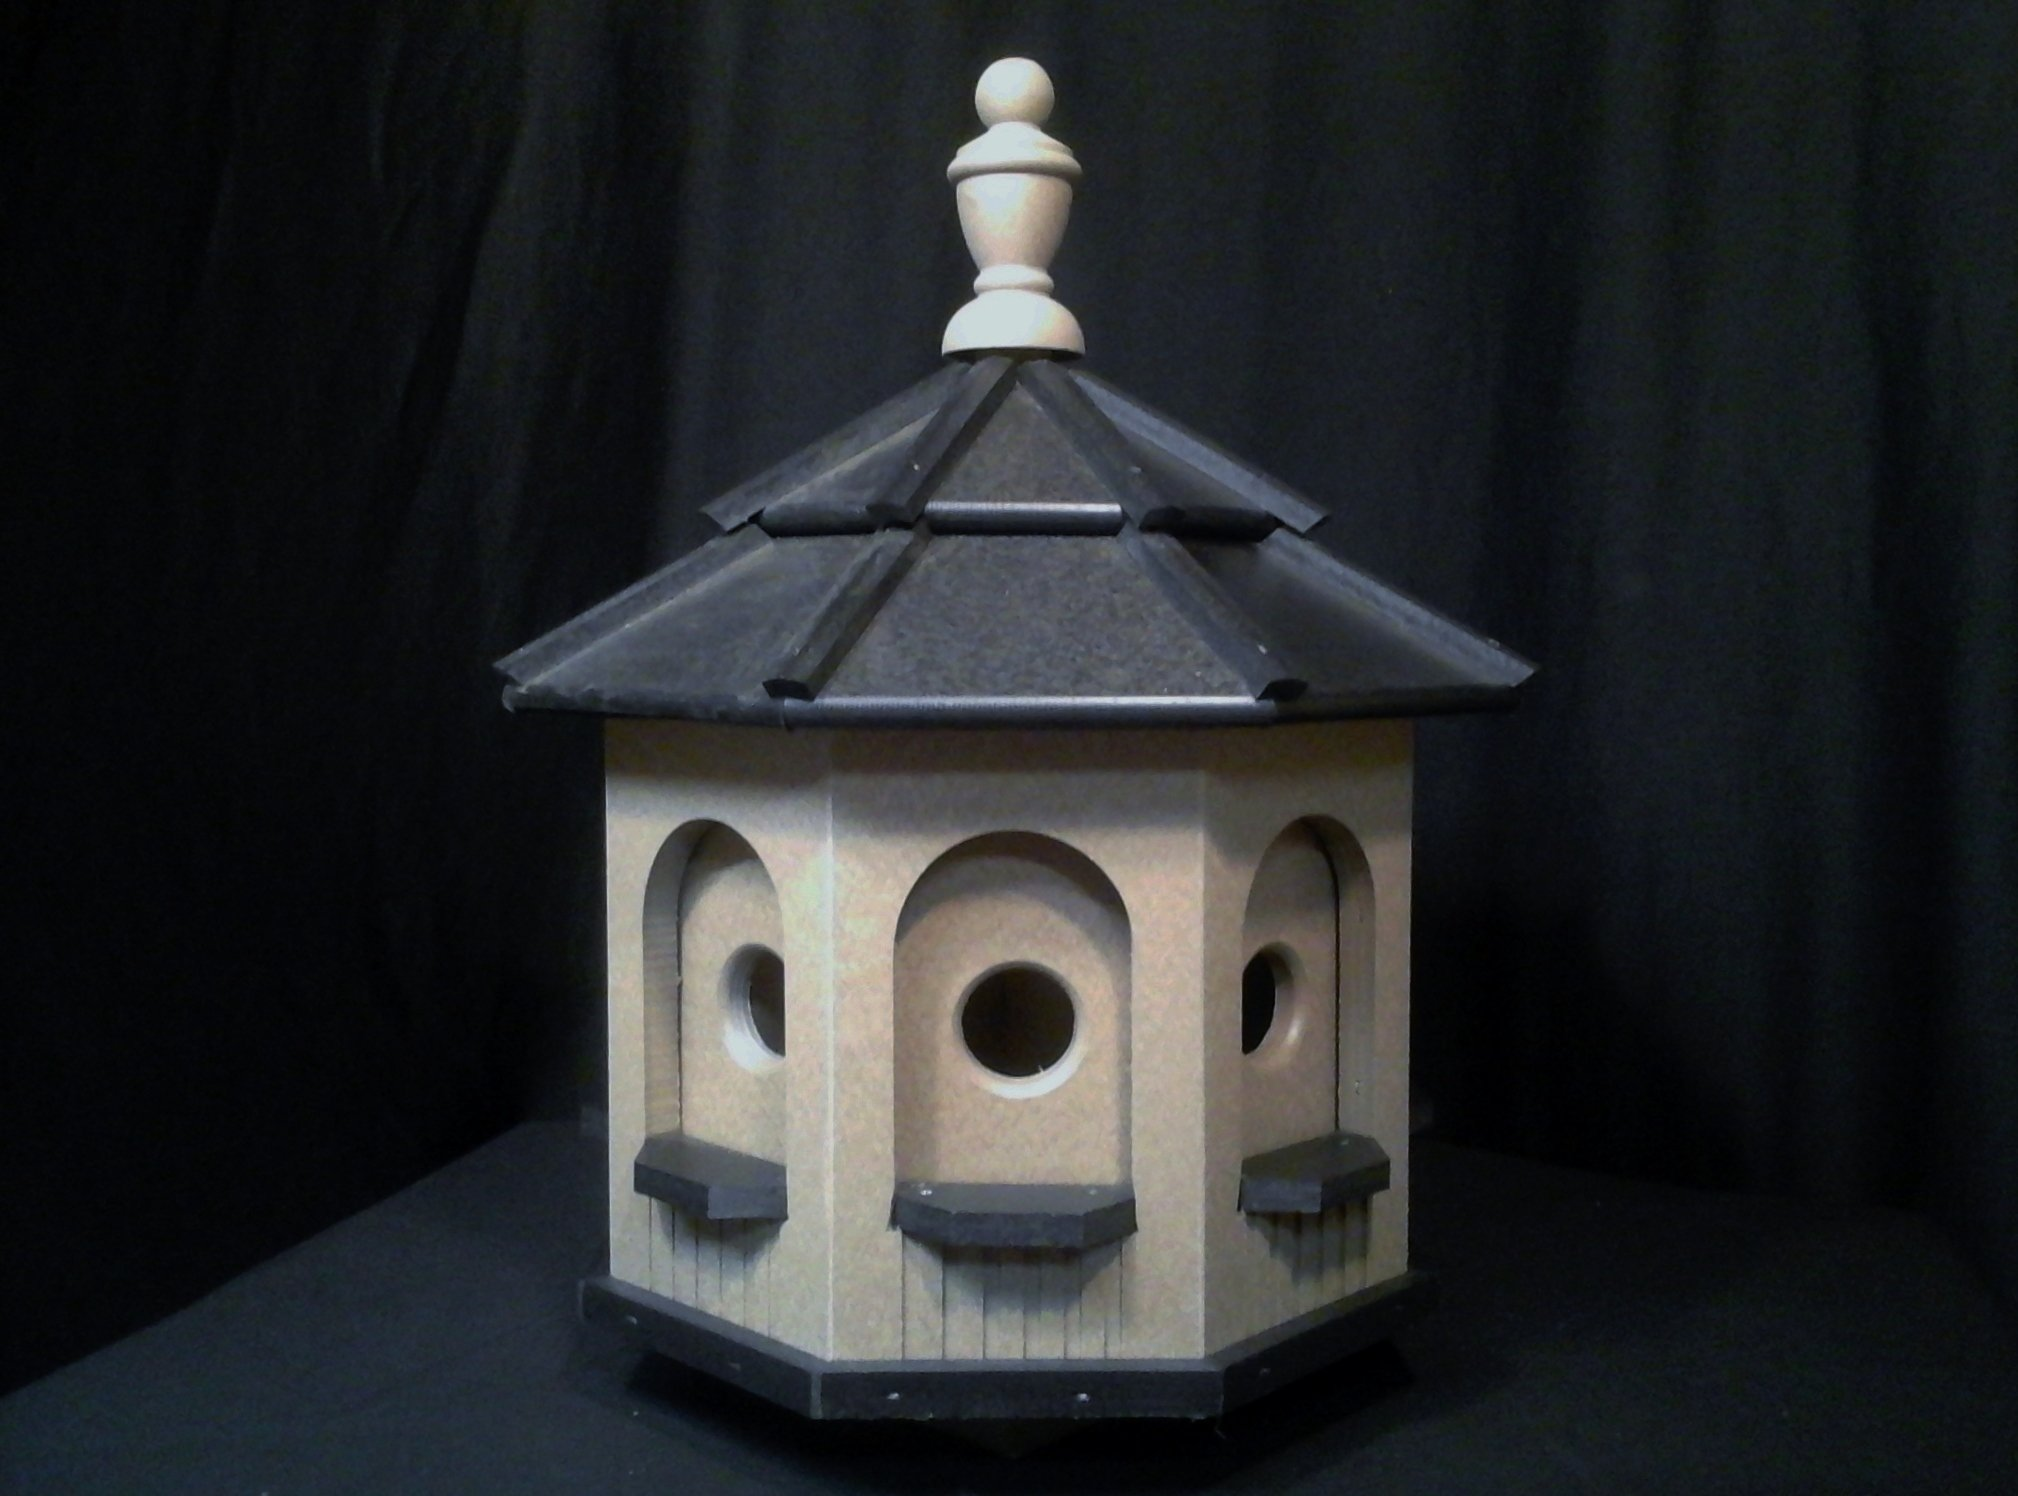 Medium Vinyl Birdhouse Amish Homemade Handmade Handcrafted Clay & Black